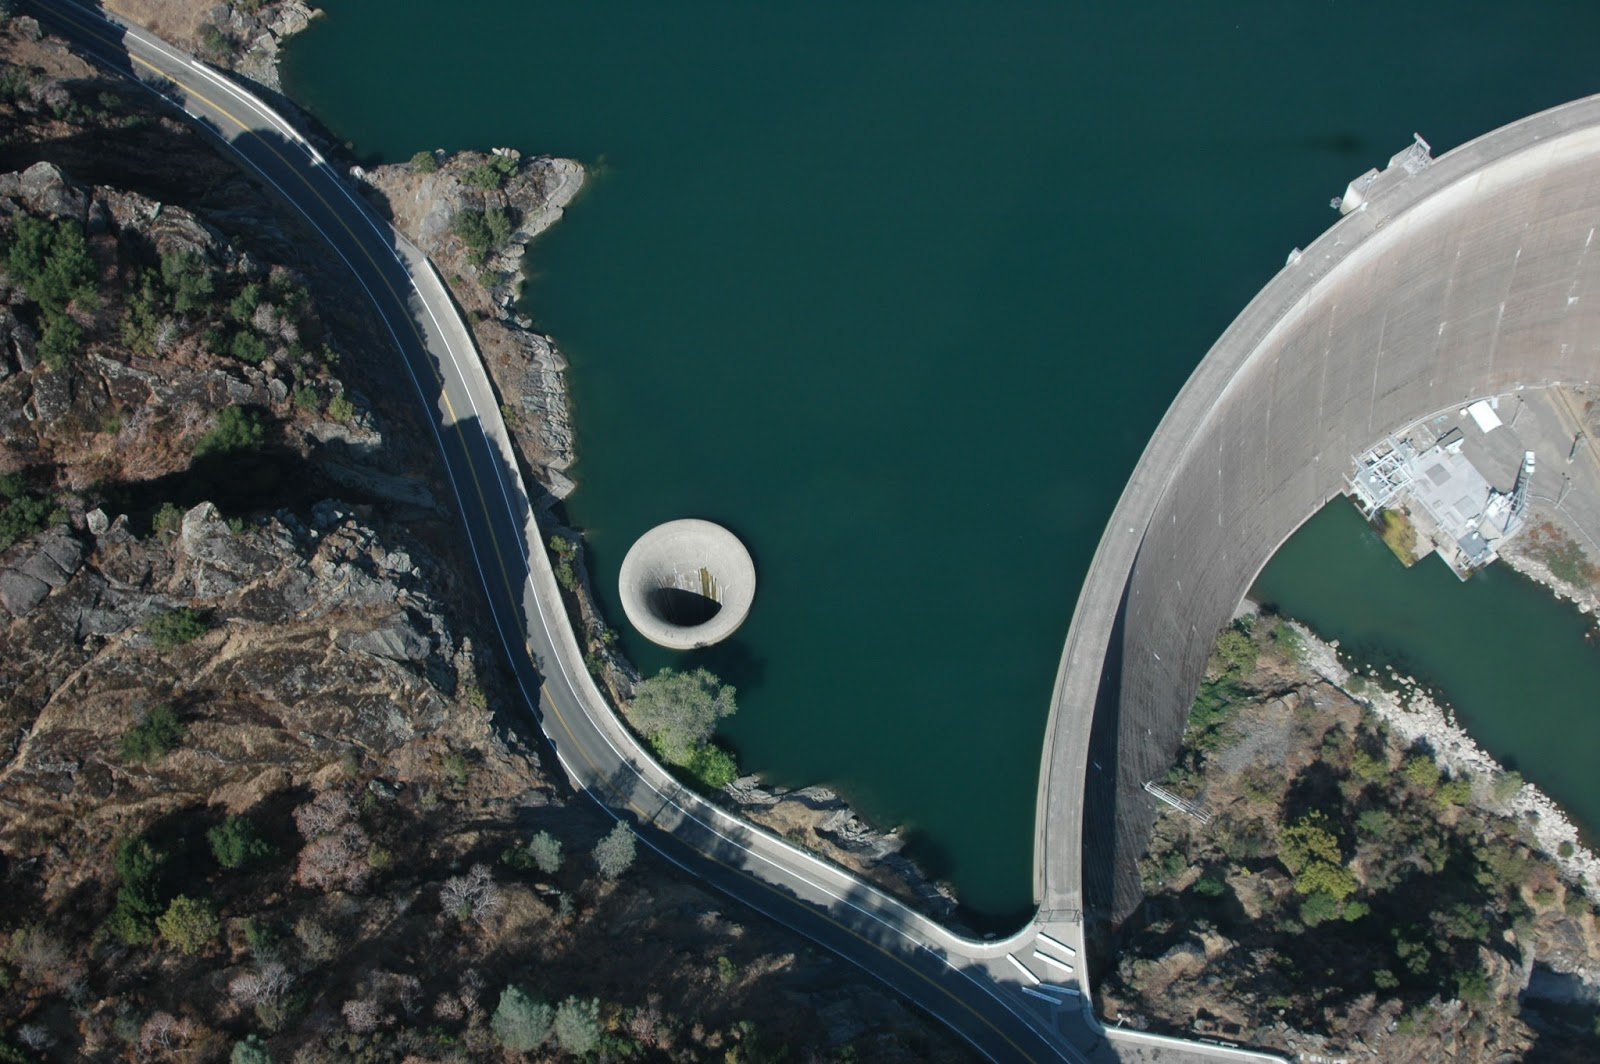 Arial View of Glory Hole in California